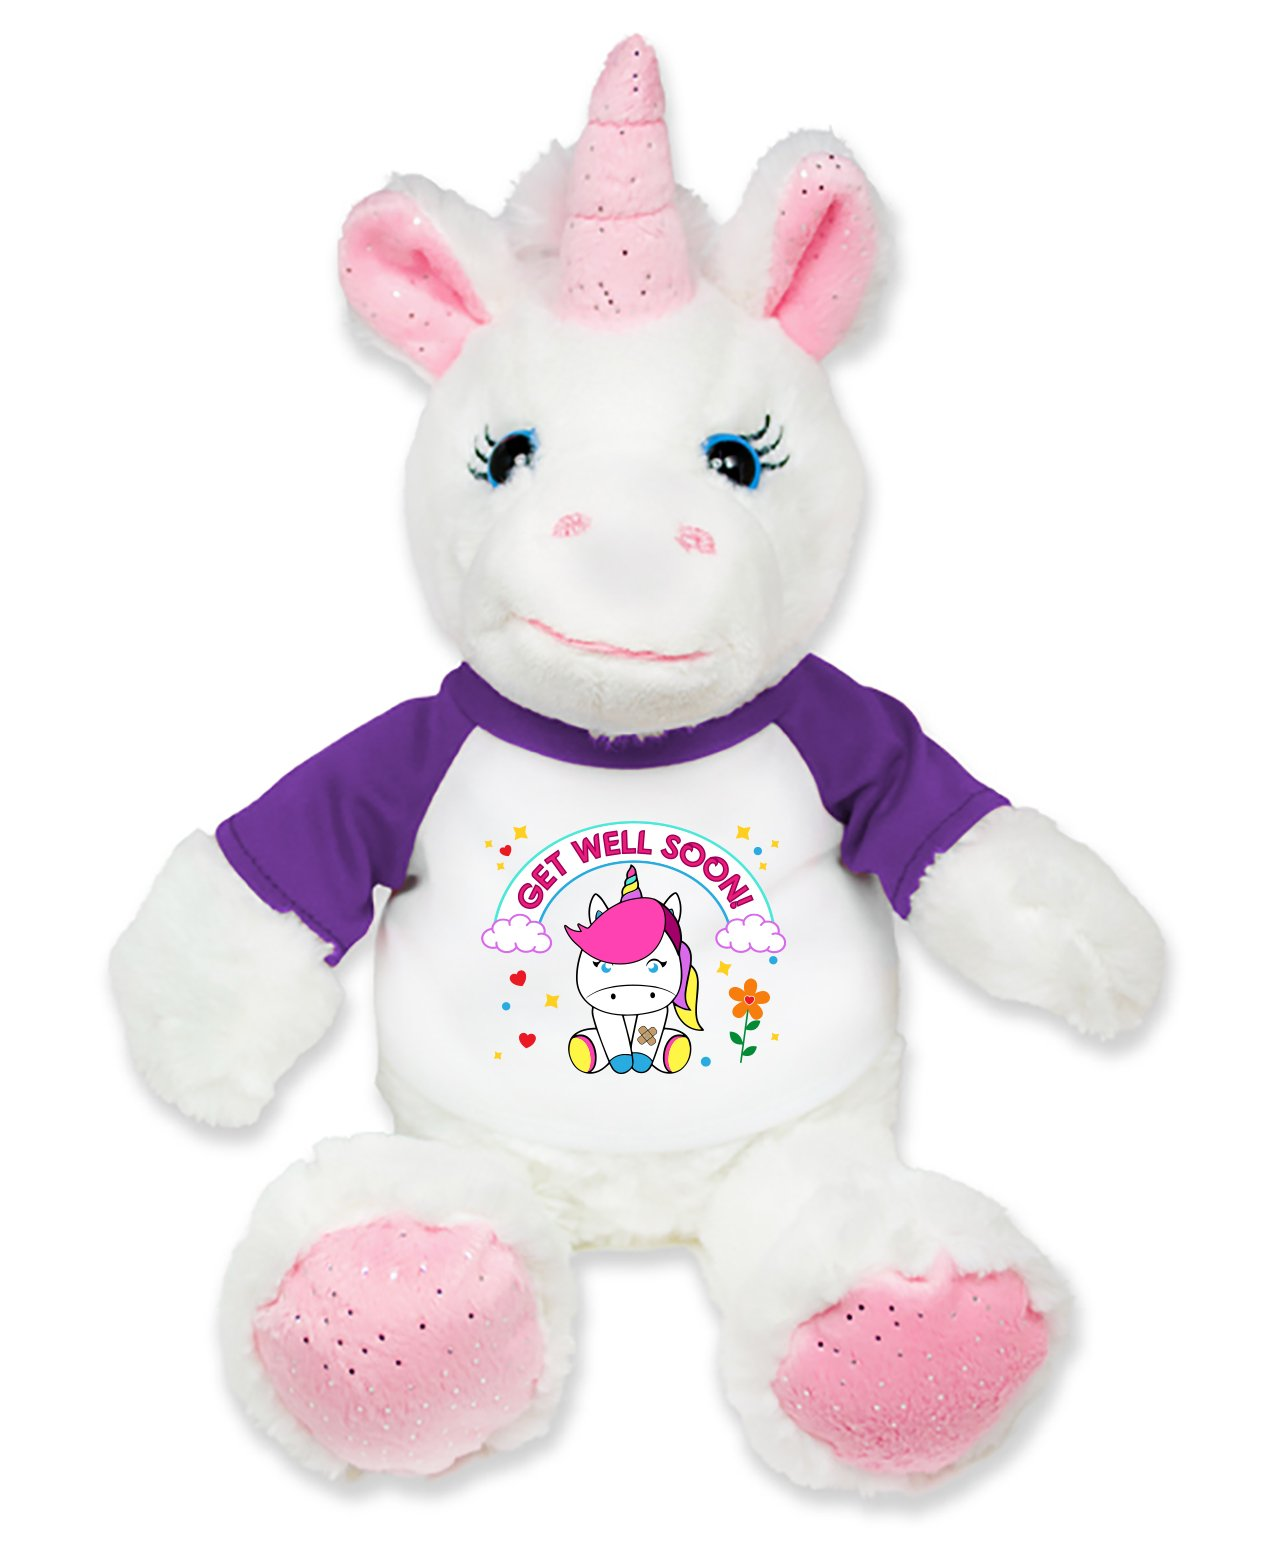 Flutter Hut Get Well Soon Unicorn Plush Pink Sparkles Message T-Shirt Purple Sleeves 8 inches